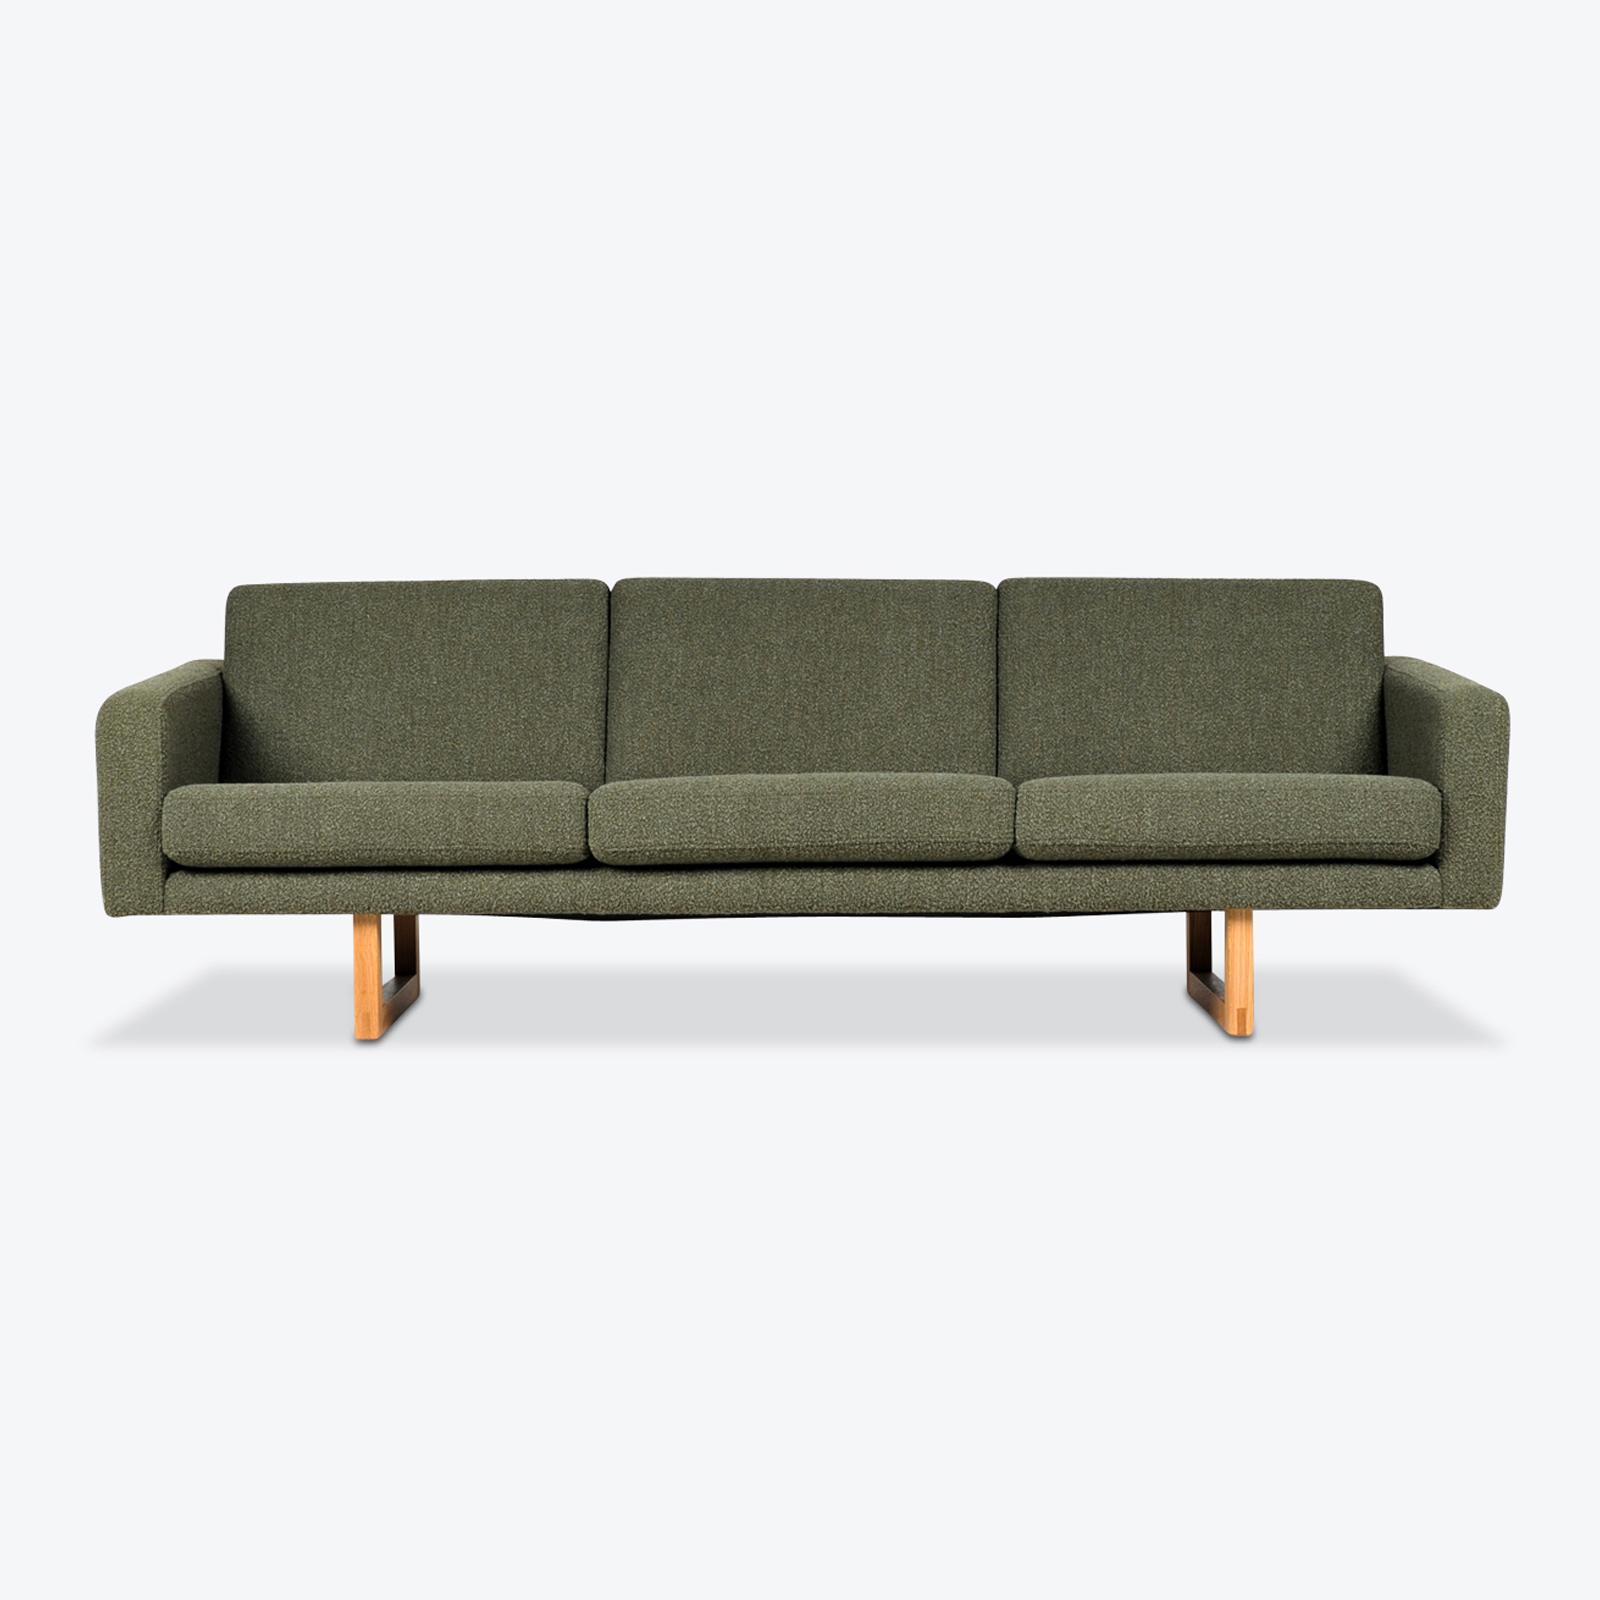 3 Seat Meadow Sofa By Mt Studio For Modern Times 2018 Australia 01